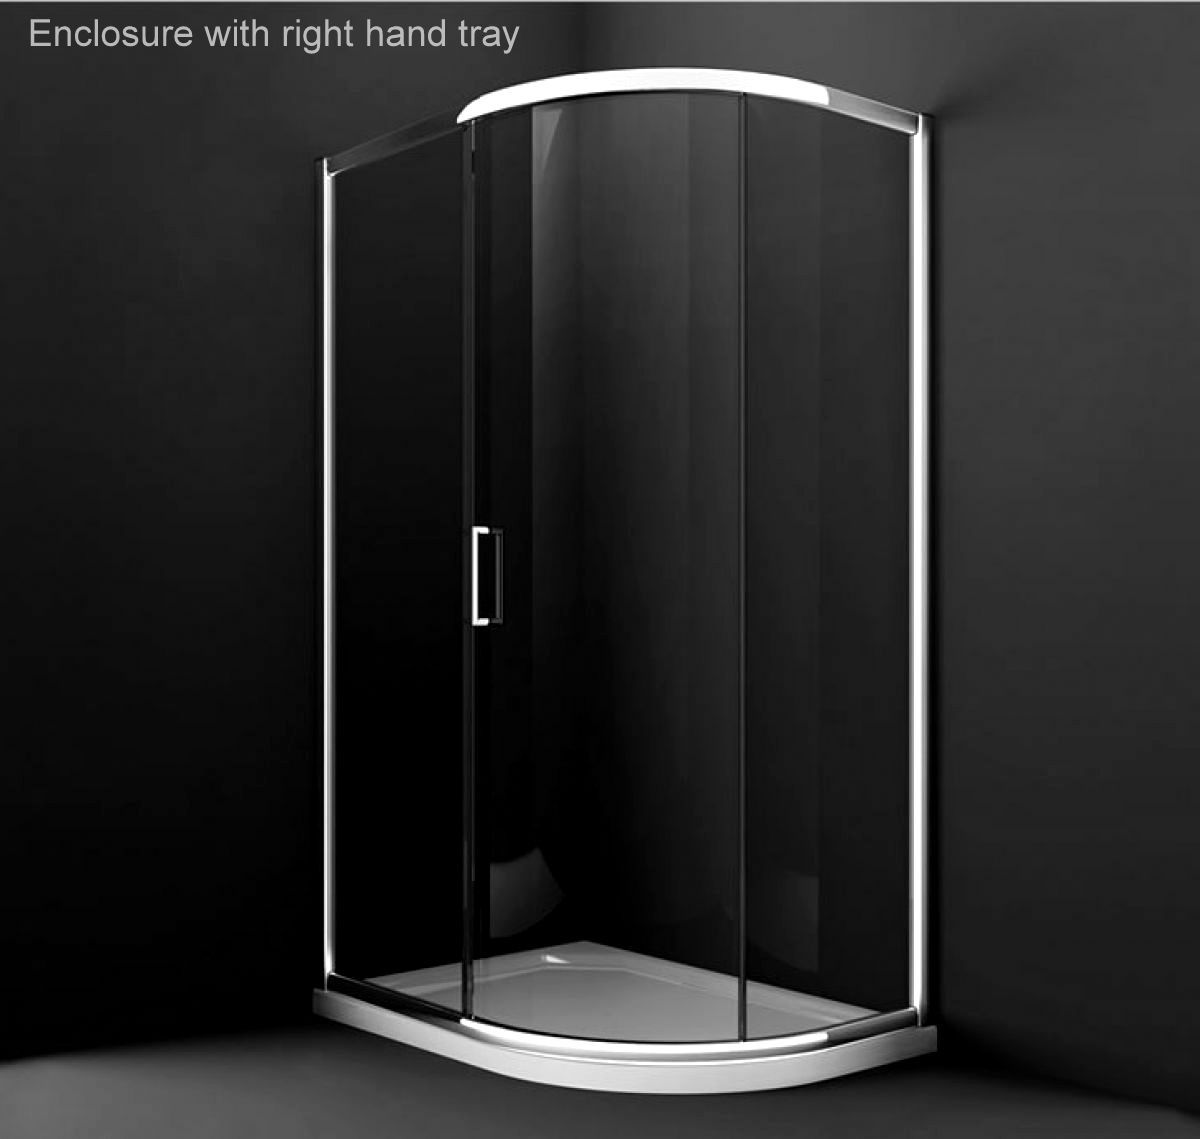 Merlyn 8 series sliding door amp inline panel - Merlyn Series 8 Single Door Offset Quadrant Shower Enclosure